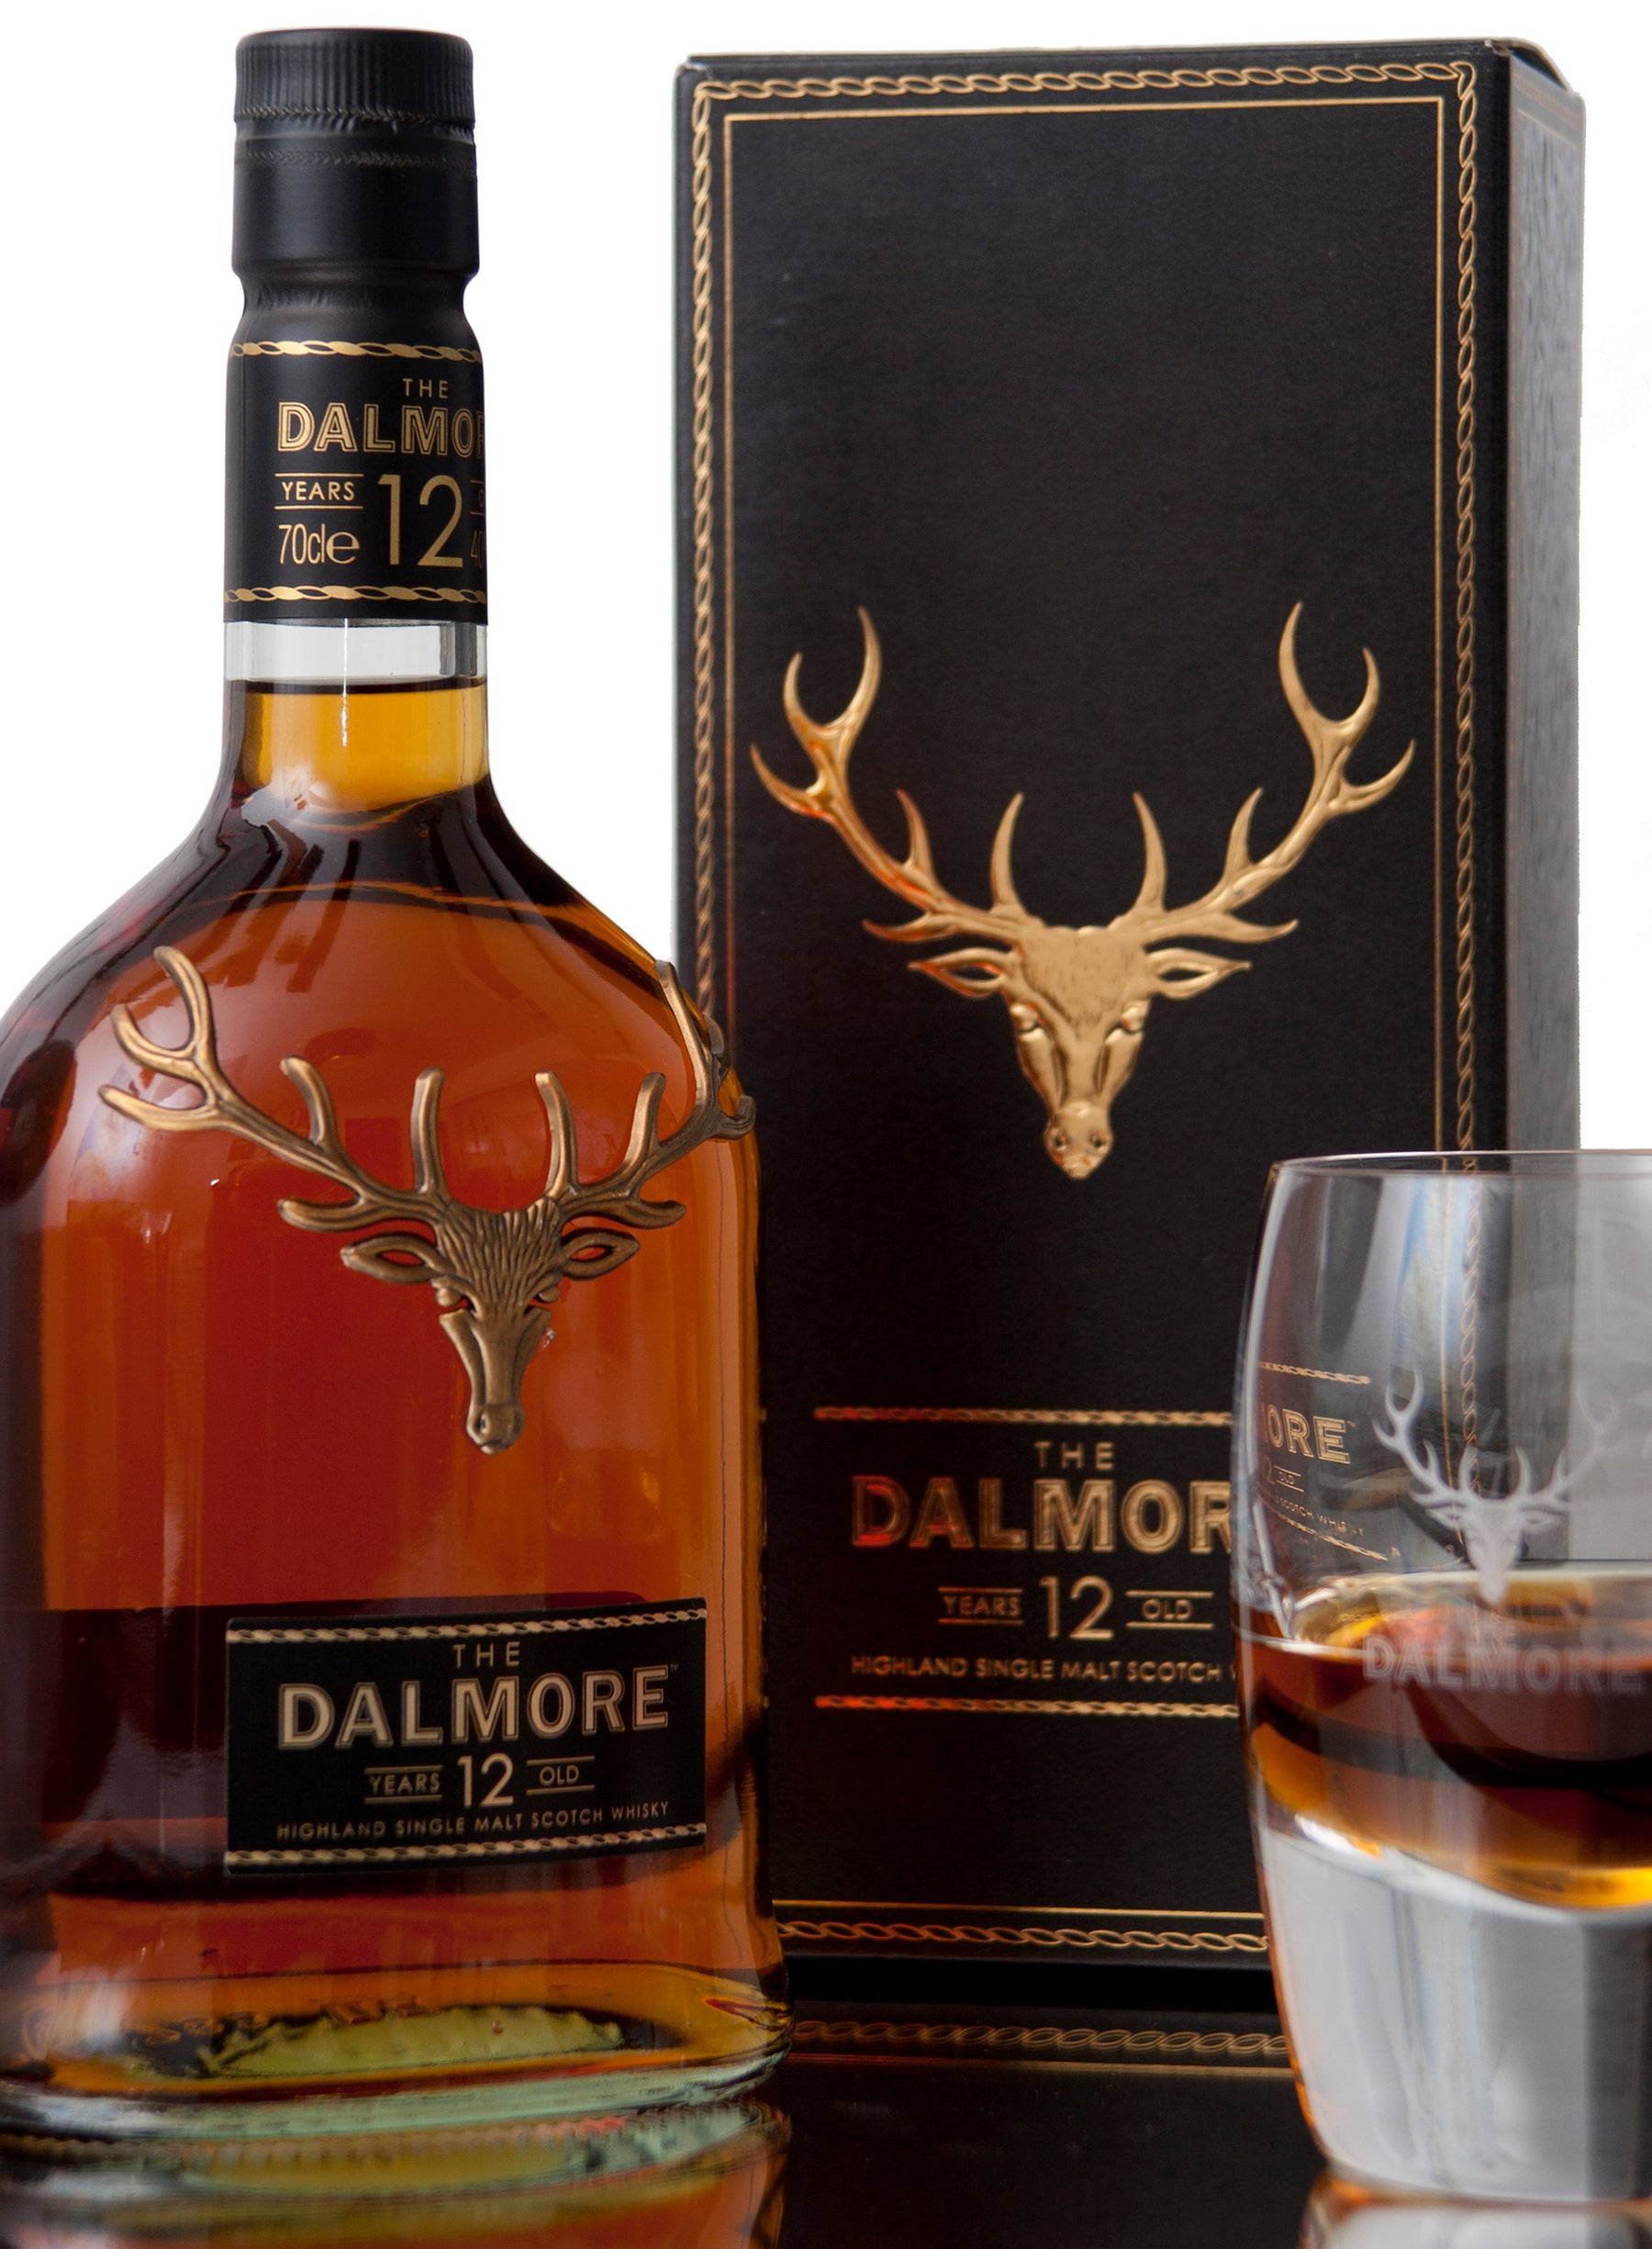 Win a glorious bottle of Dalmore 12 year old